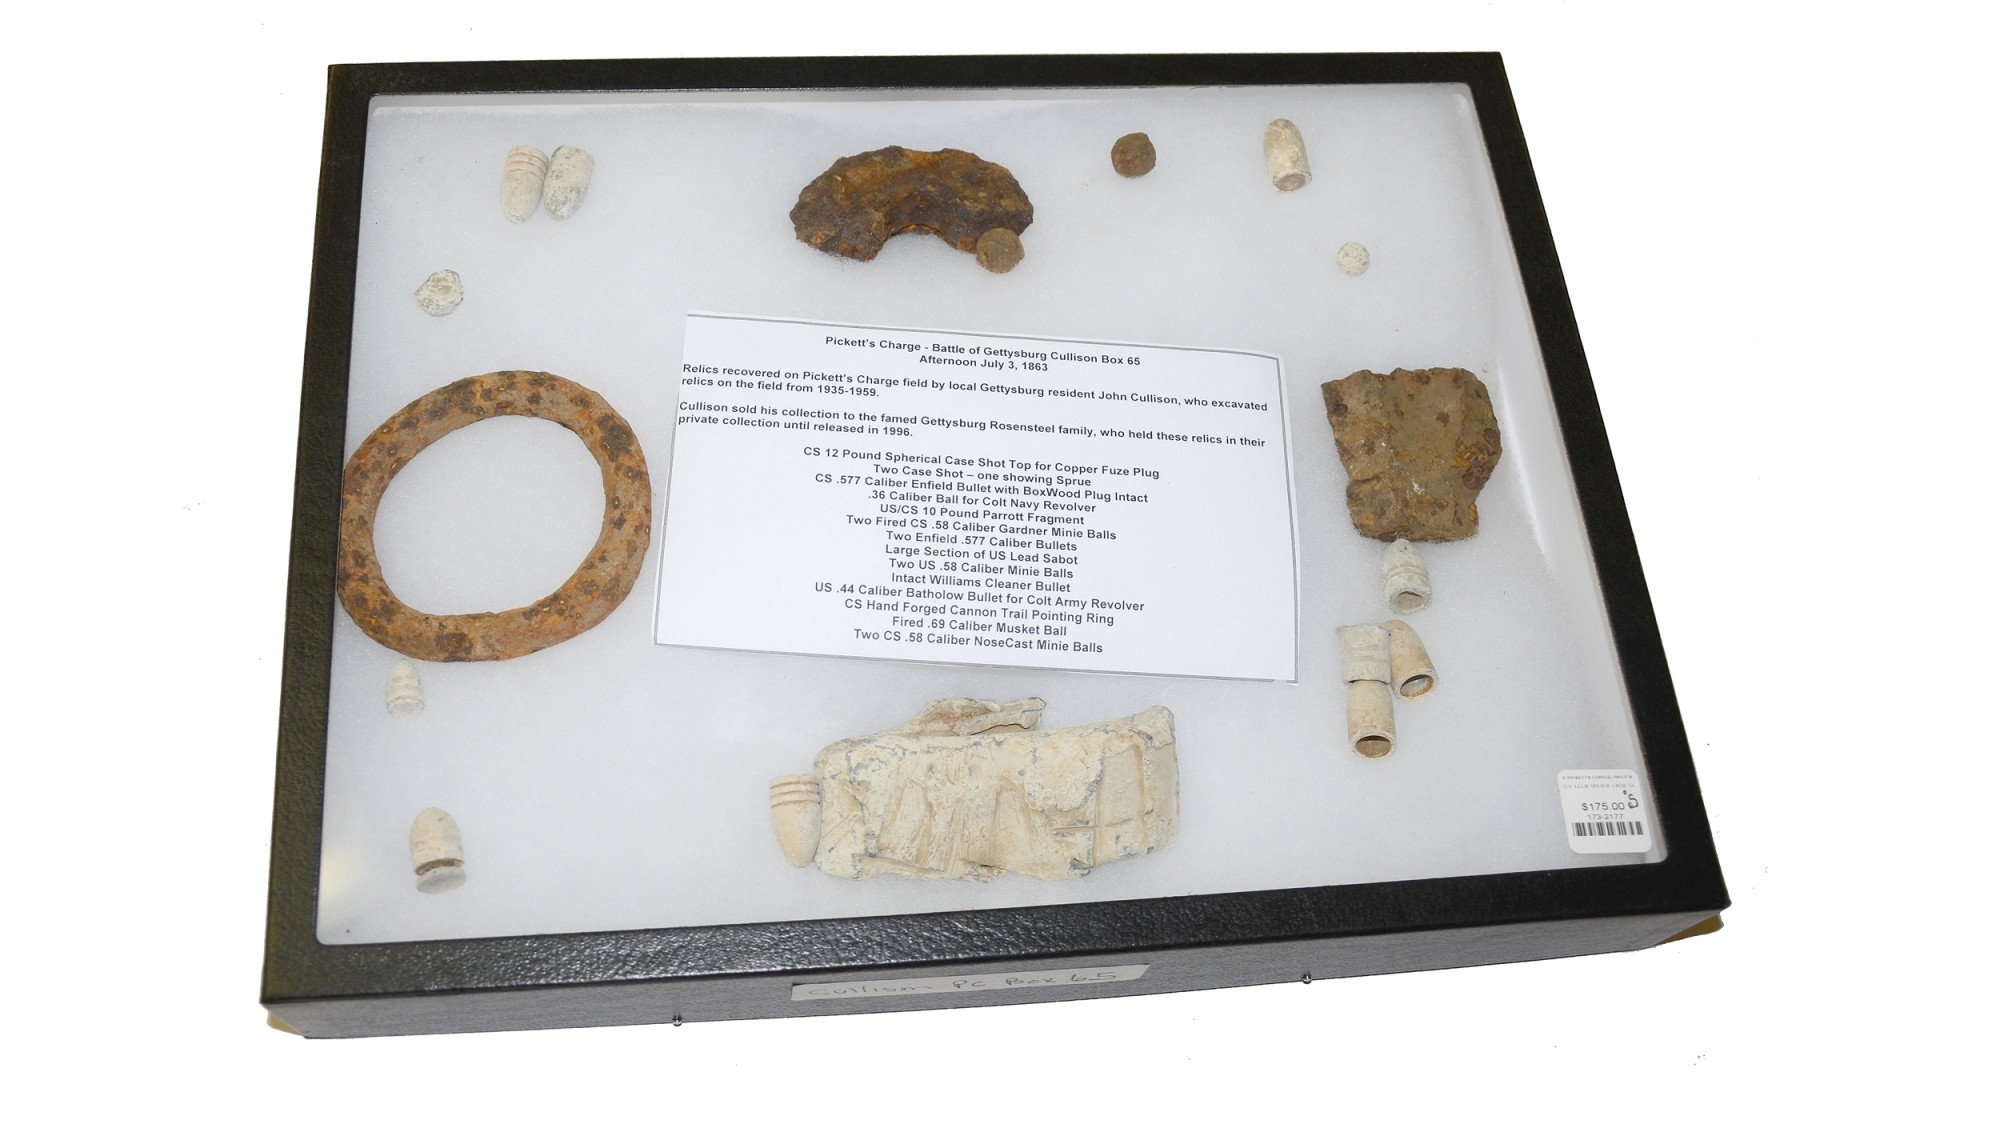 BOX OF RELICS RECOVERED FROM PICKETT'S CHARGE